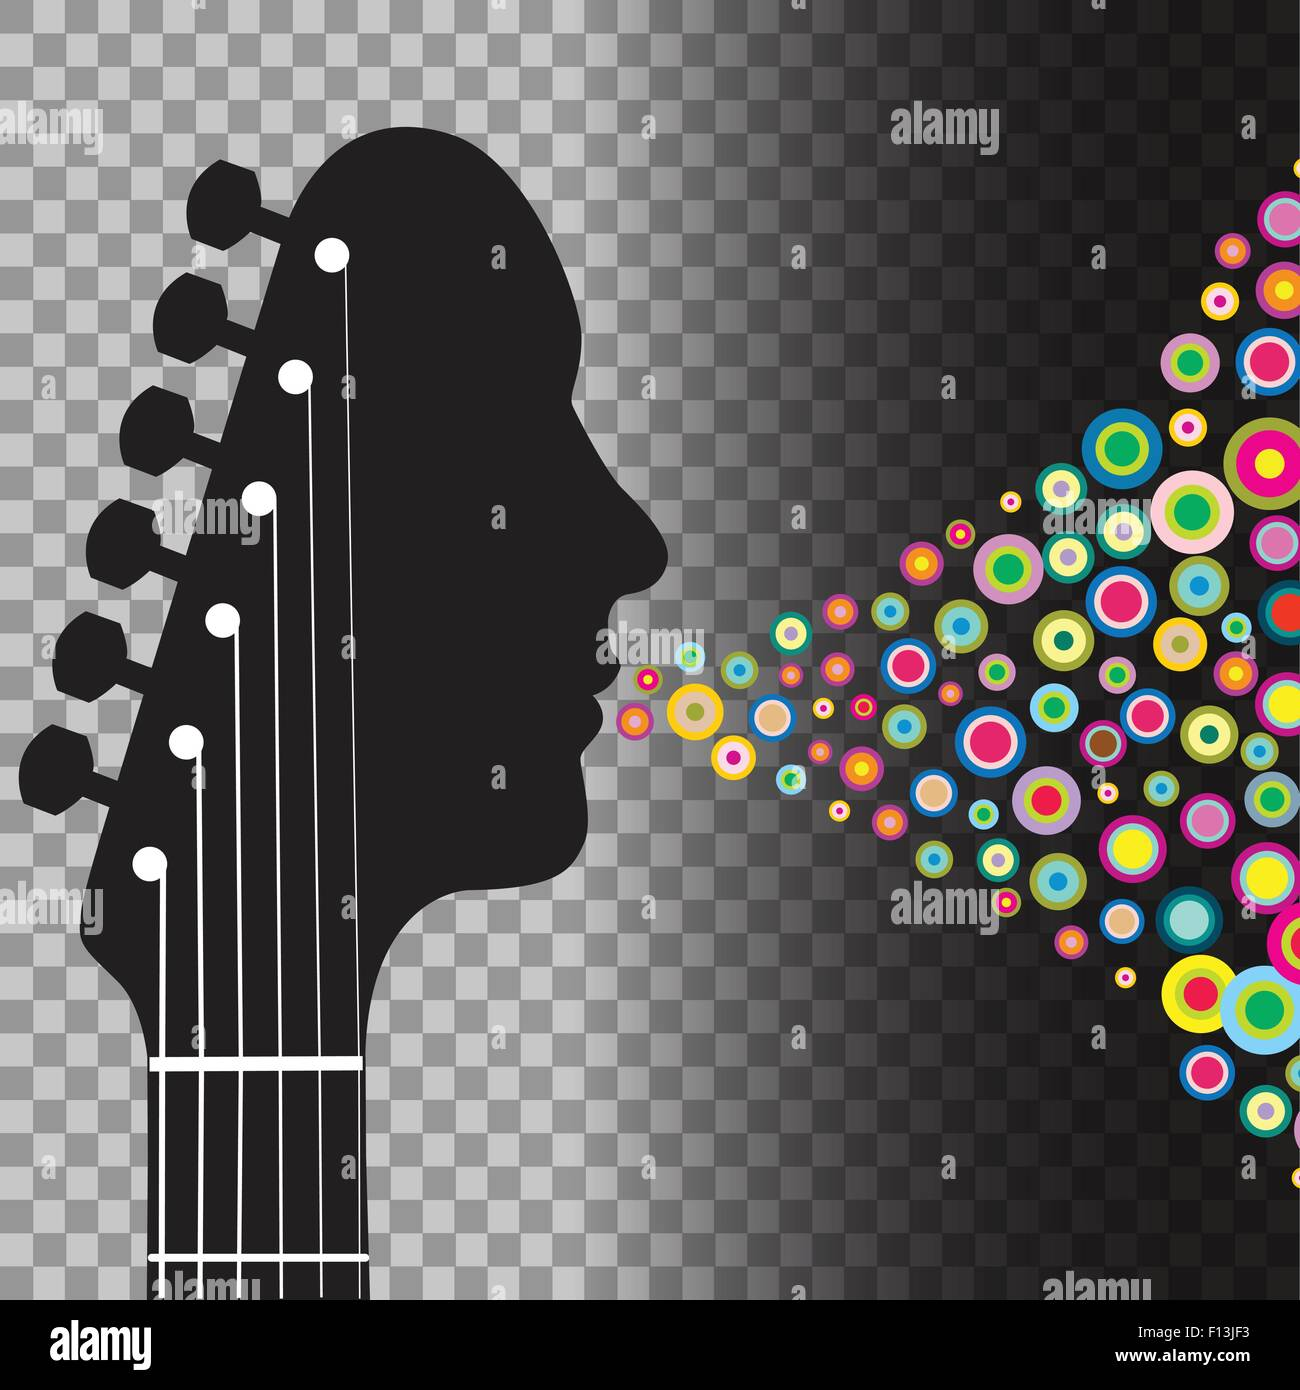 Guitar Headstock Man With Circles On A Transparent Background Stock Vector Image Art Alamy